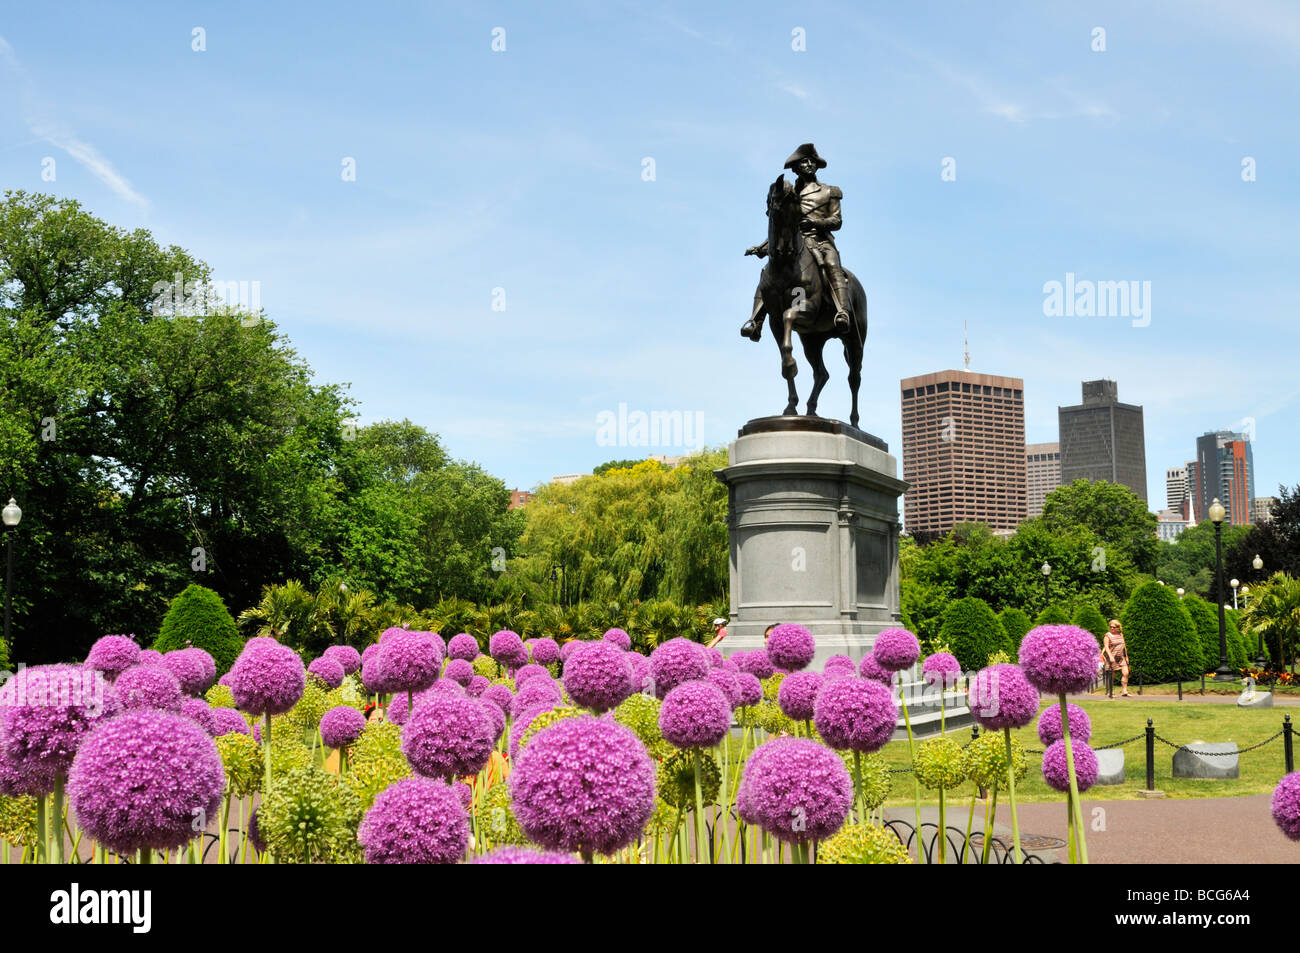 Statue of George Washington in the Public Gardens of Boston Common with Giant Allium in bloom and city skyline in - Stock Image